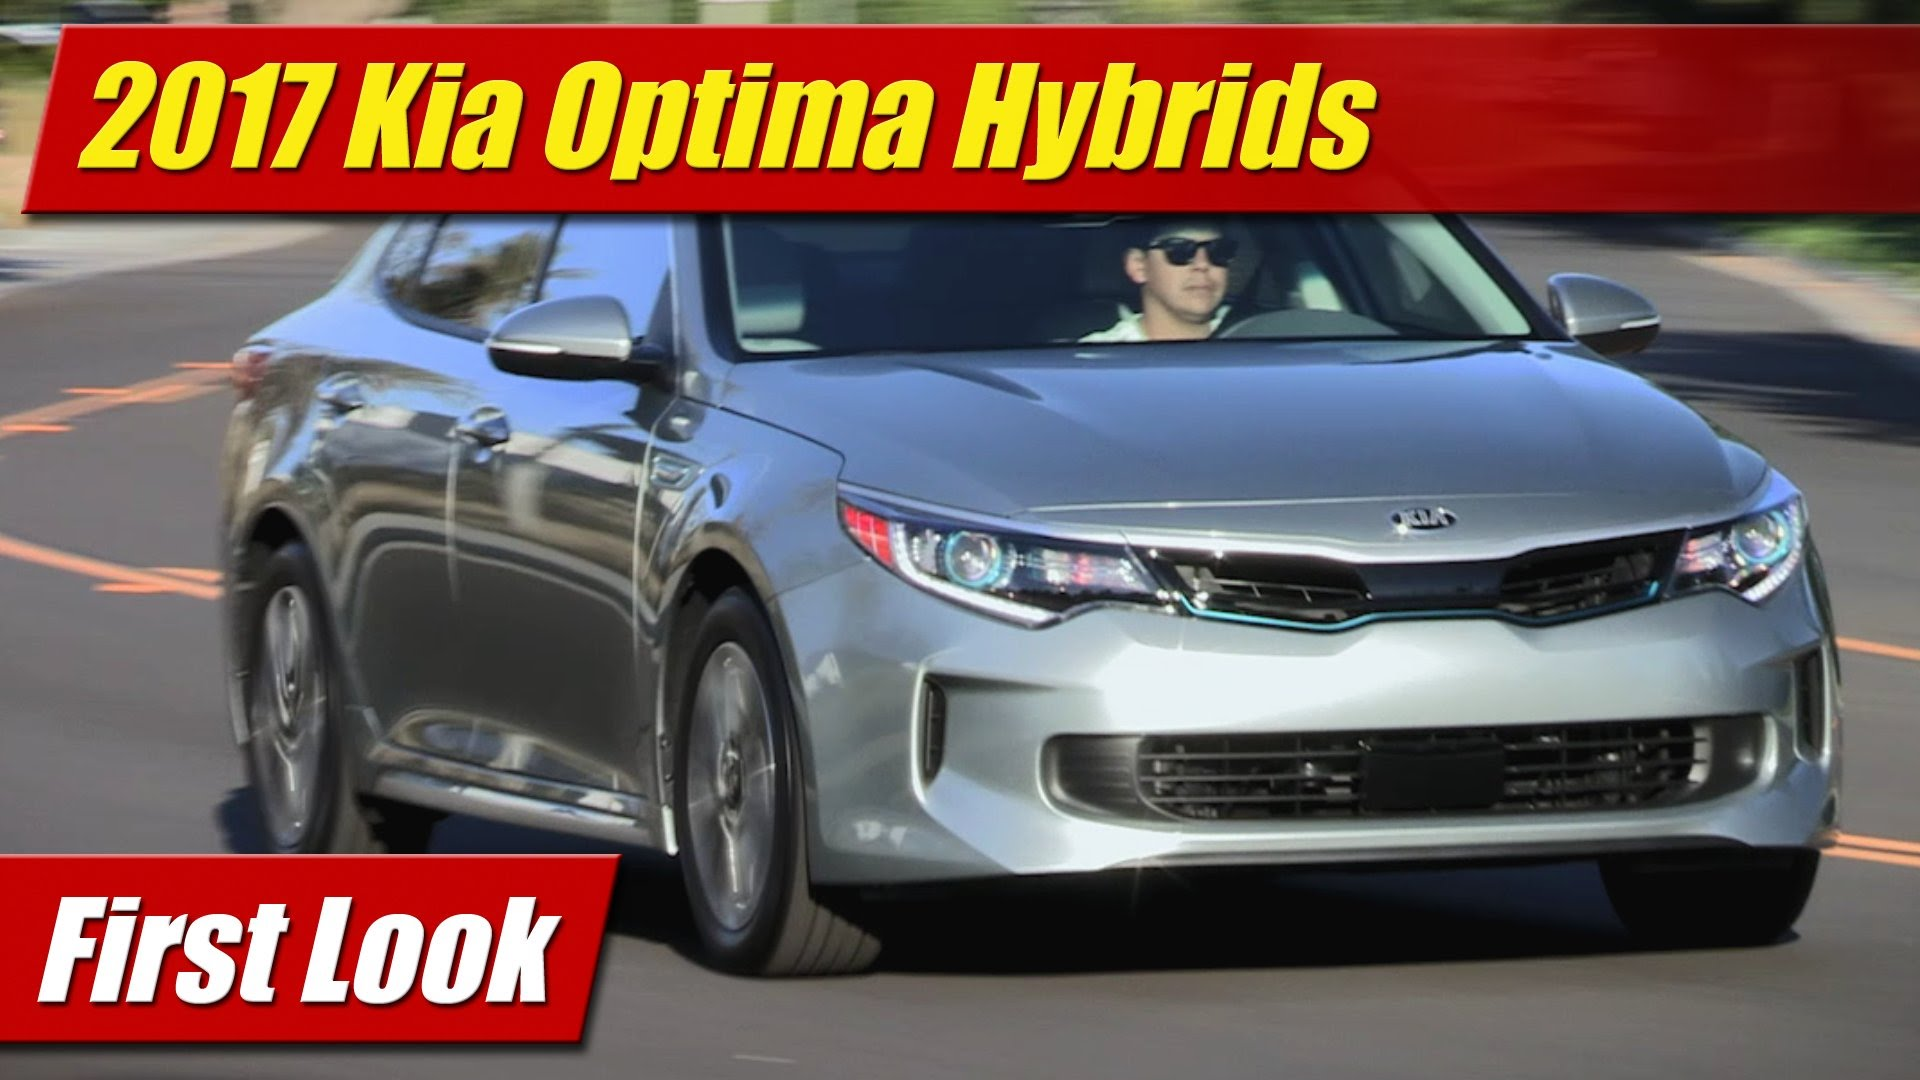 First Look 2017 Kia Optima Hybrids